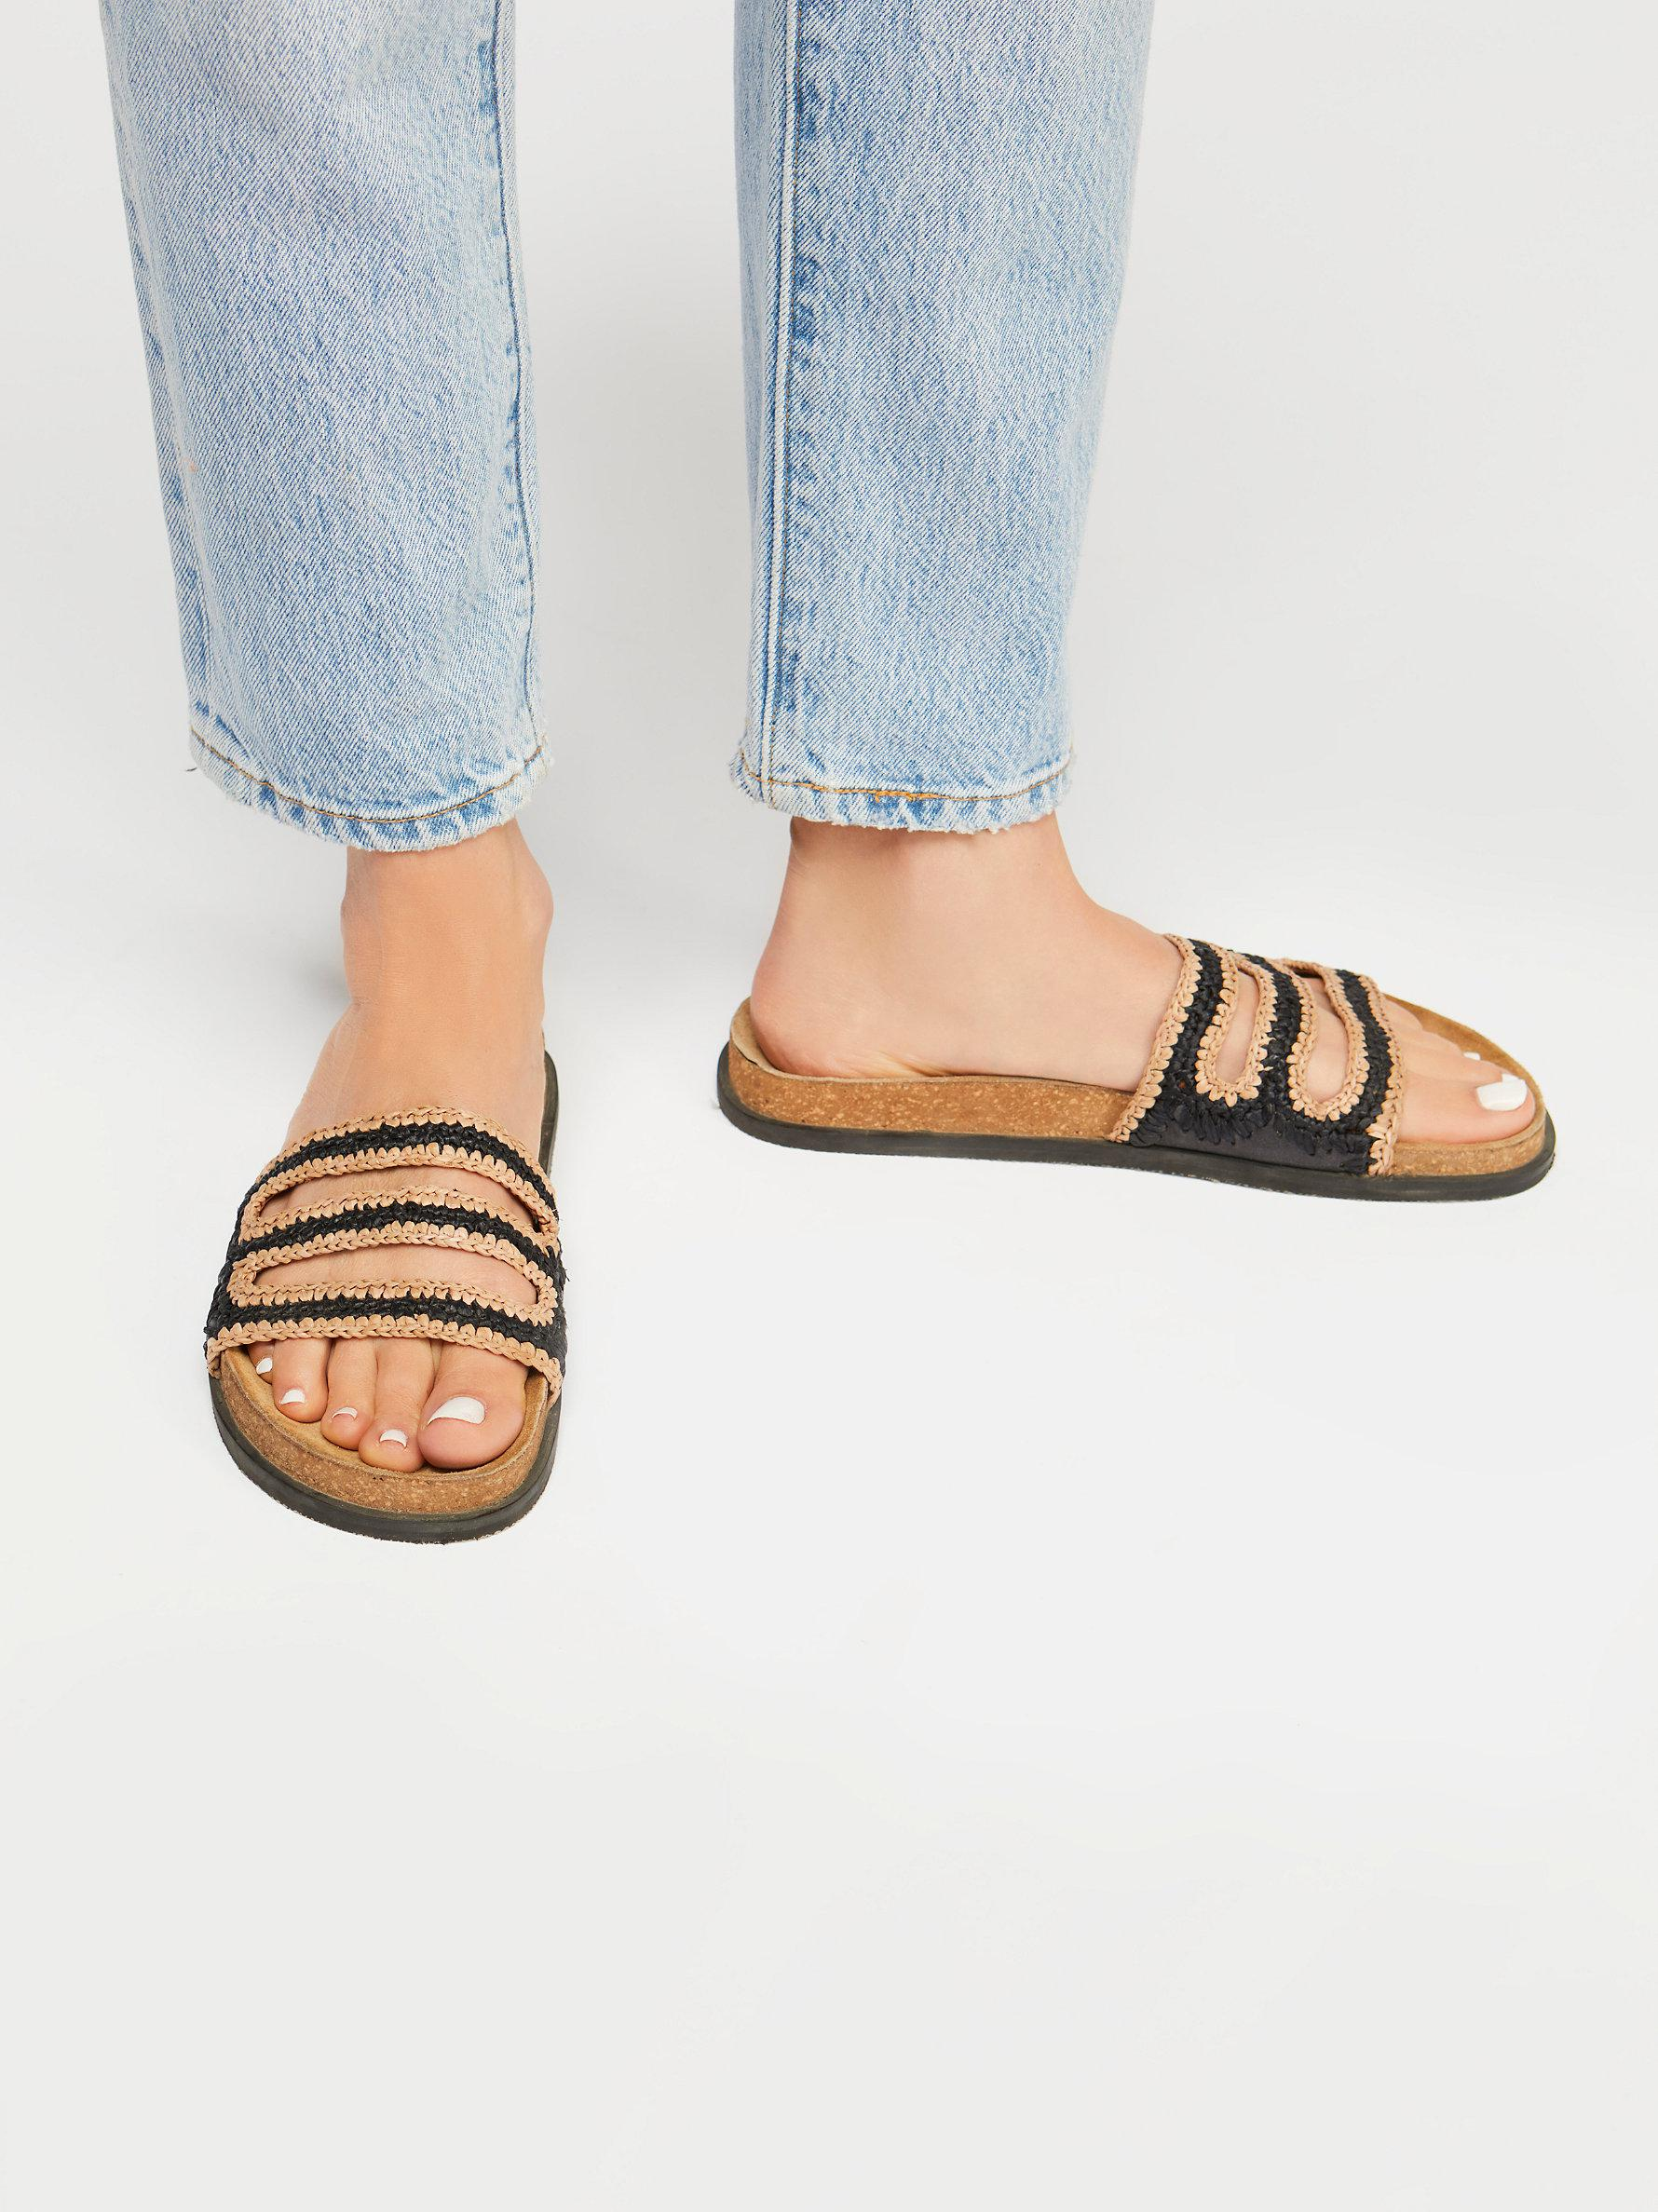 Free People Crete Footbed Sandal (Women's) Yy3LalCwS